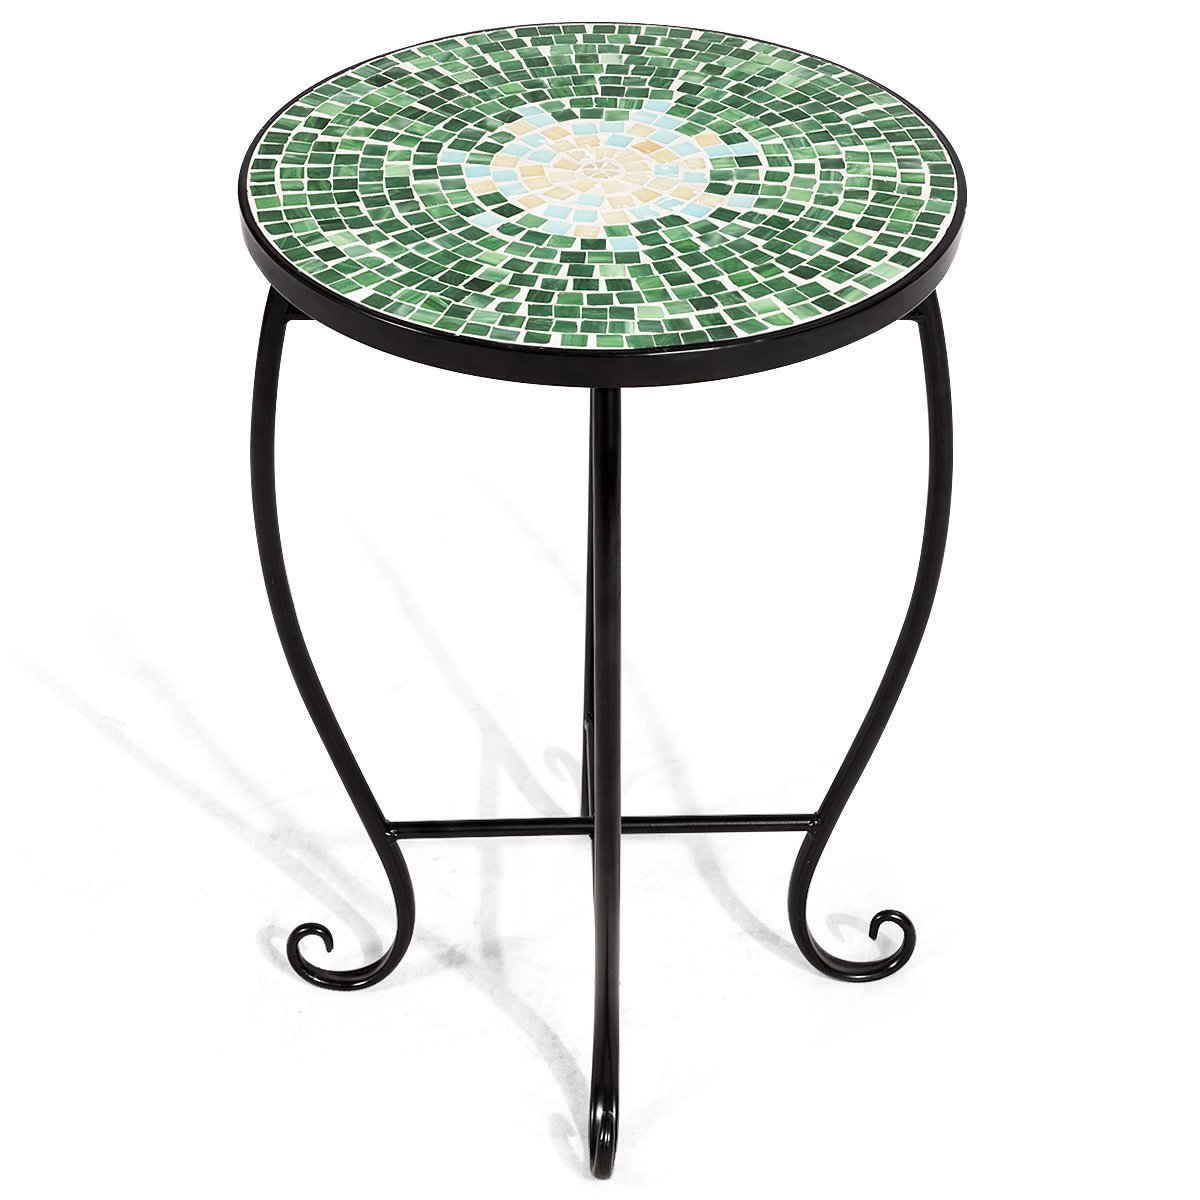 mosaic accent find line zaltana outdoor table get quotations giantex round side patio plant stand porch beach theme balcony back deck pool affordable furniture gold drum coffee